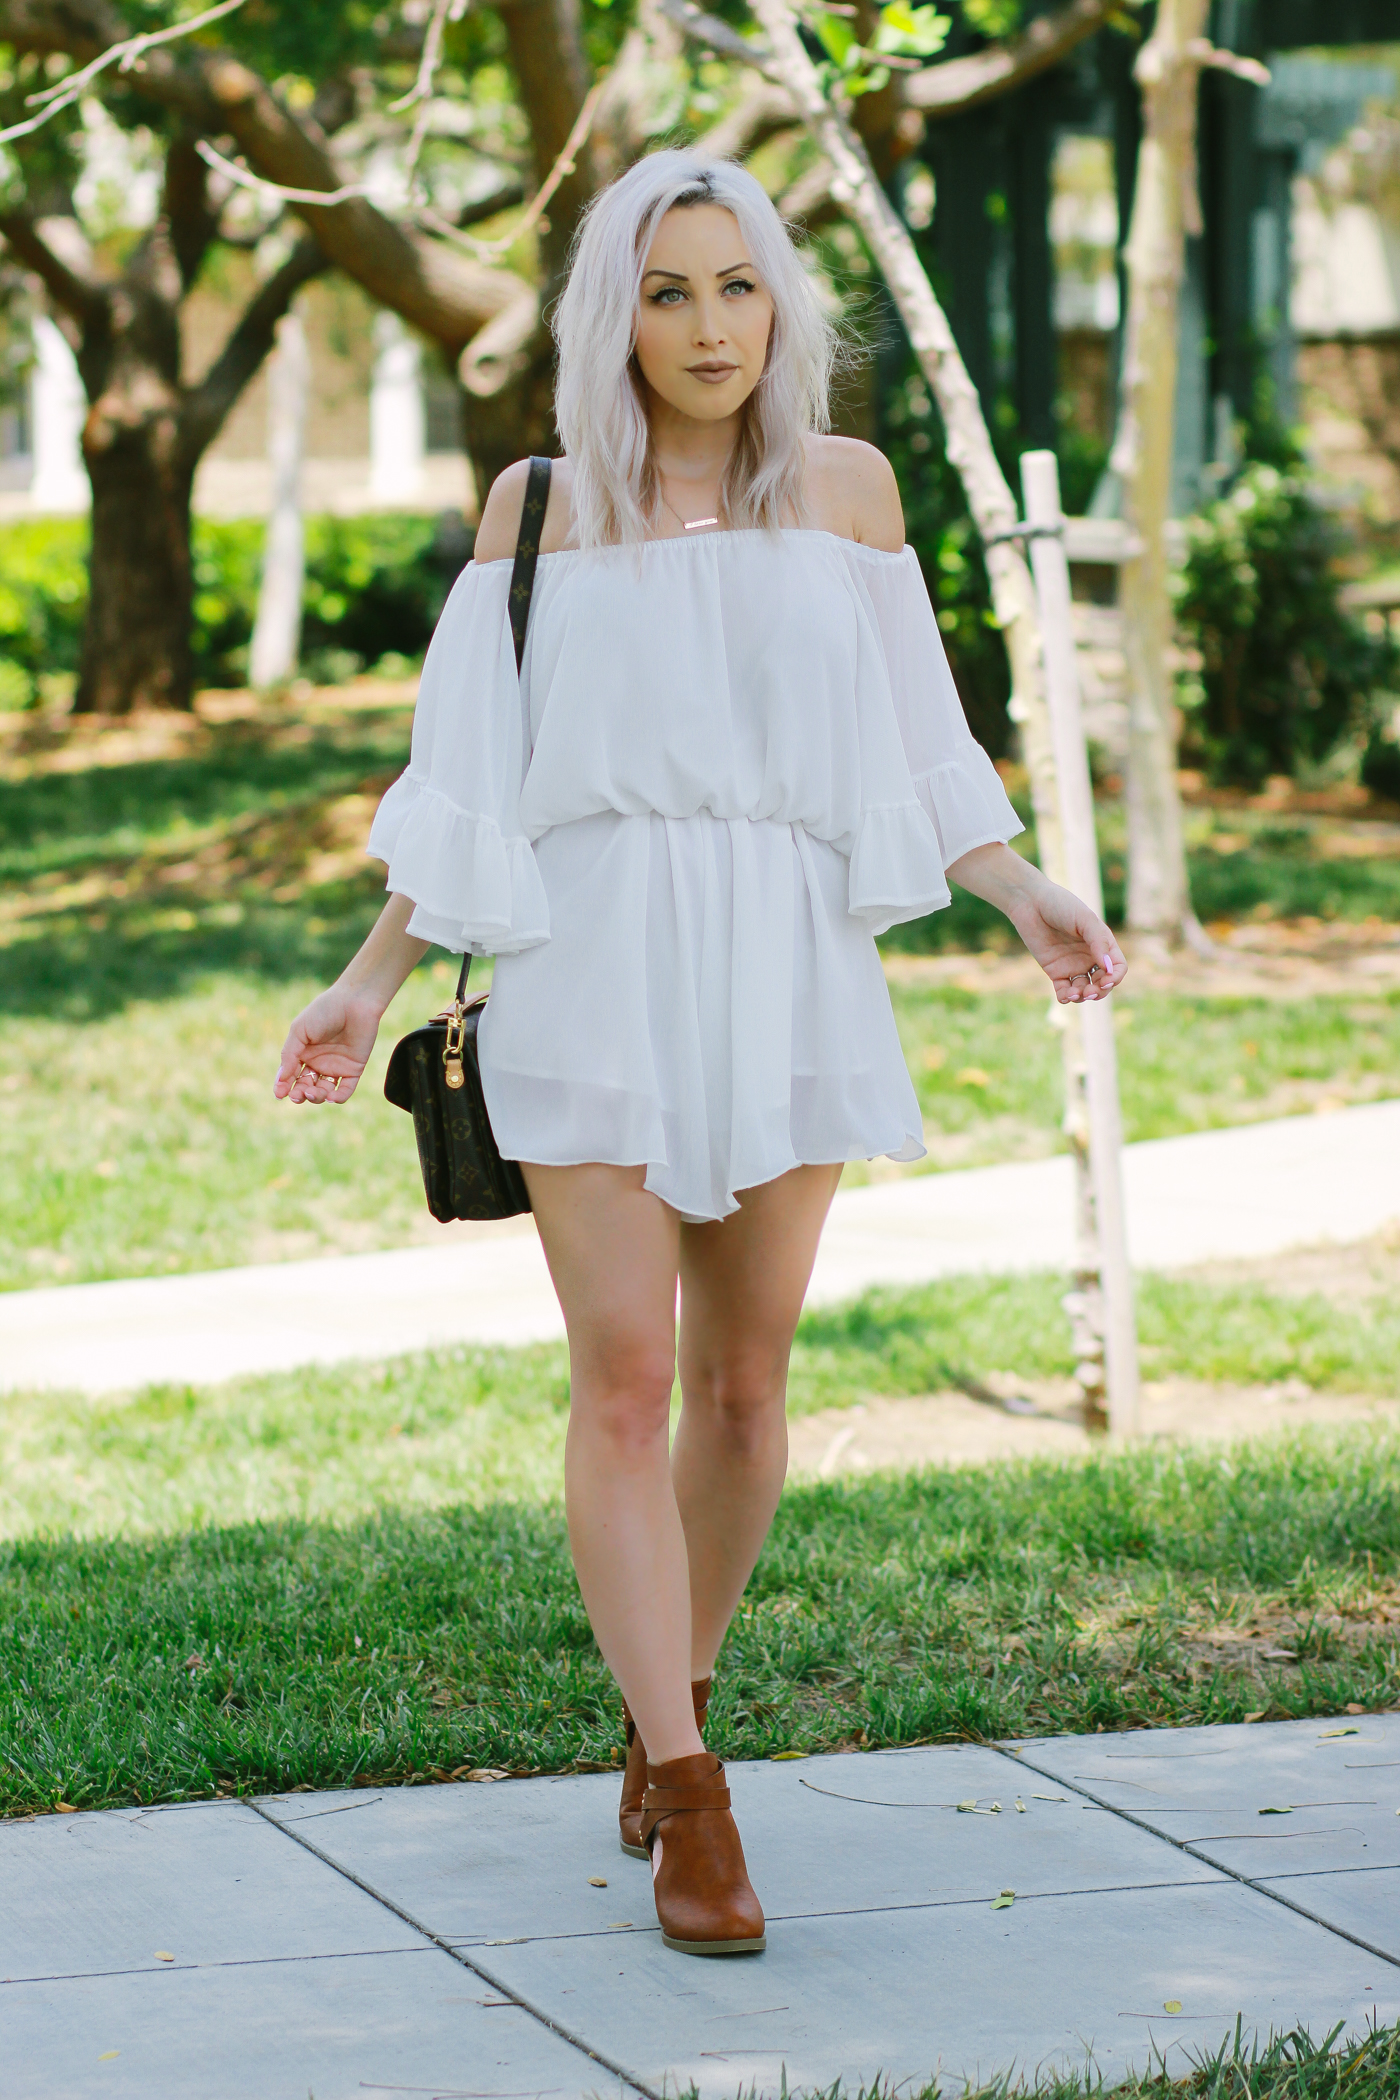 Blondie in the City | White Chiffon romper/playsuit from @chicwish | Brown Booties from @shoedazzle | Summer #OOTD